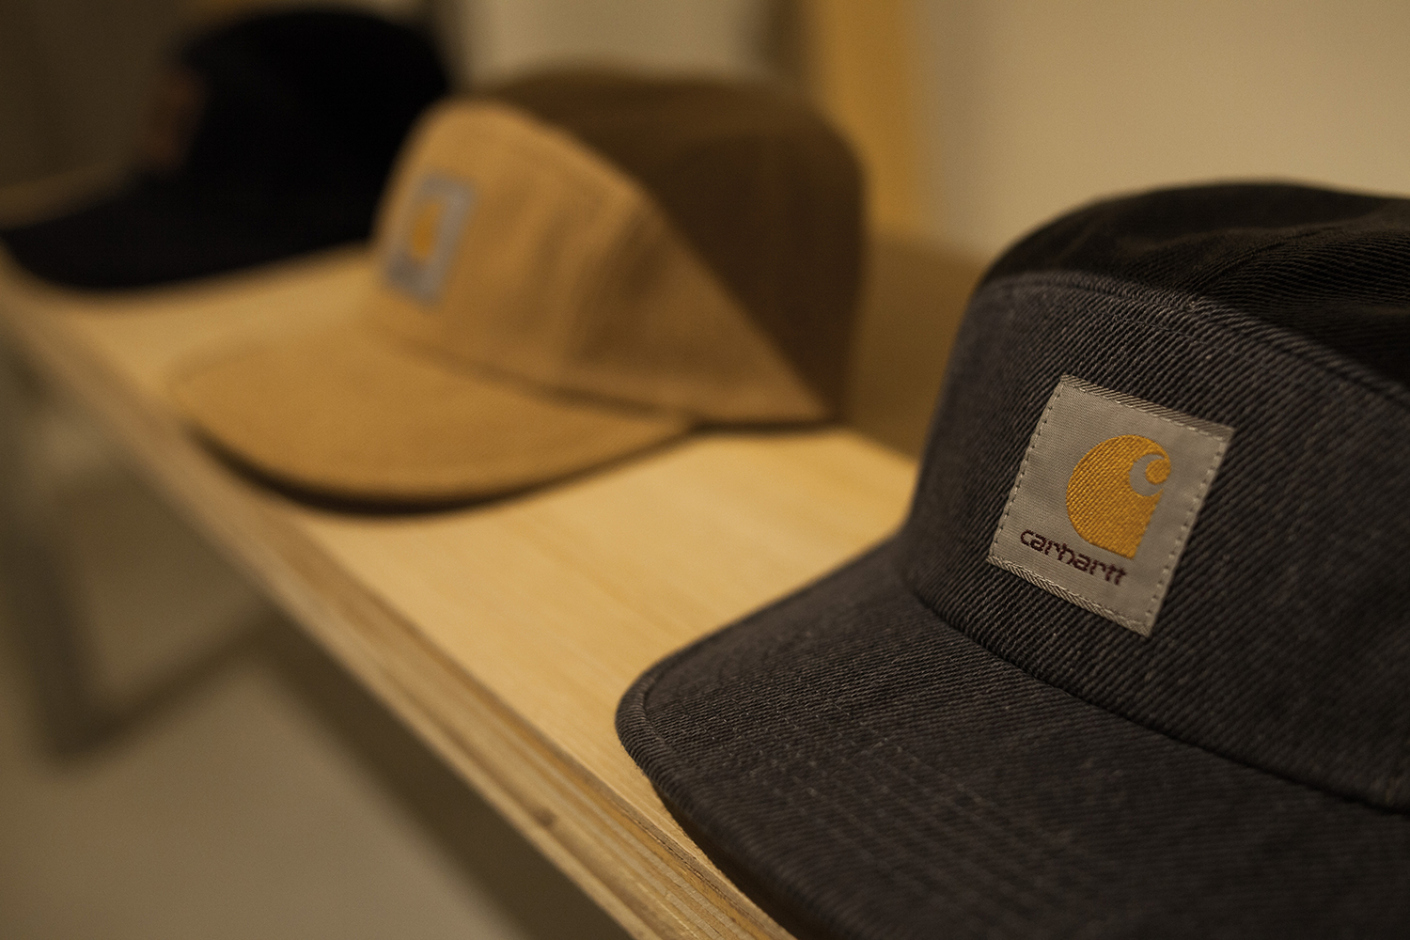 carhartt-wip-taipei-opening-8